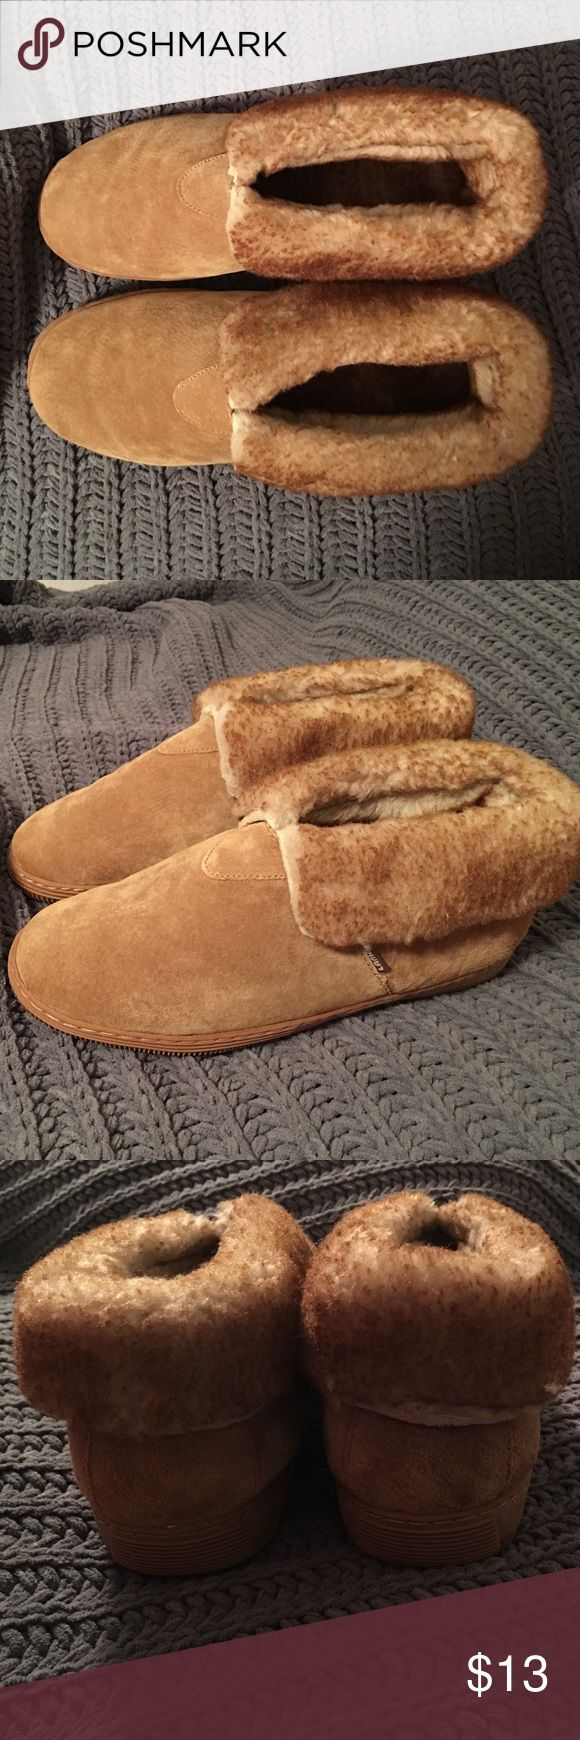 Mens sheepskin slippers These are super soft sheepskin slippers that would be perfect for a boyfriend or friend! I bought for my boyfriend but unfortunately they were too small so they never got worn. Perfect condition! Lamo Shoes Loafers & Slip-Ons